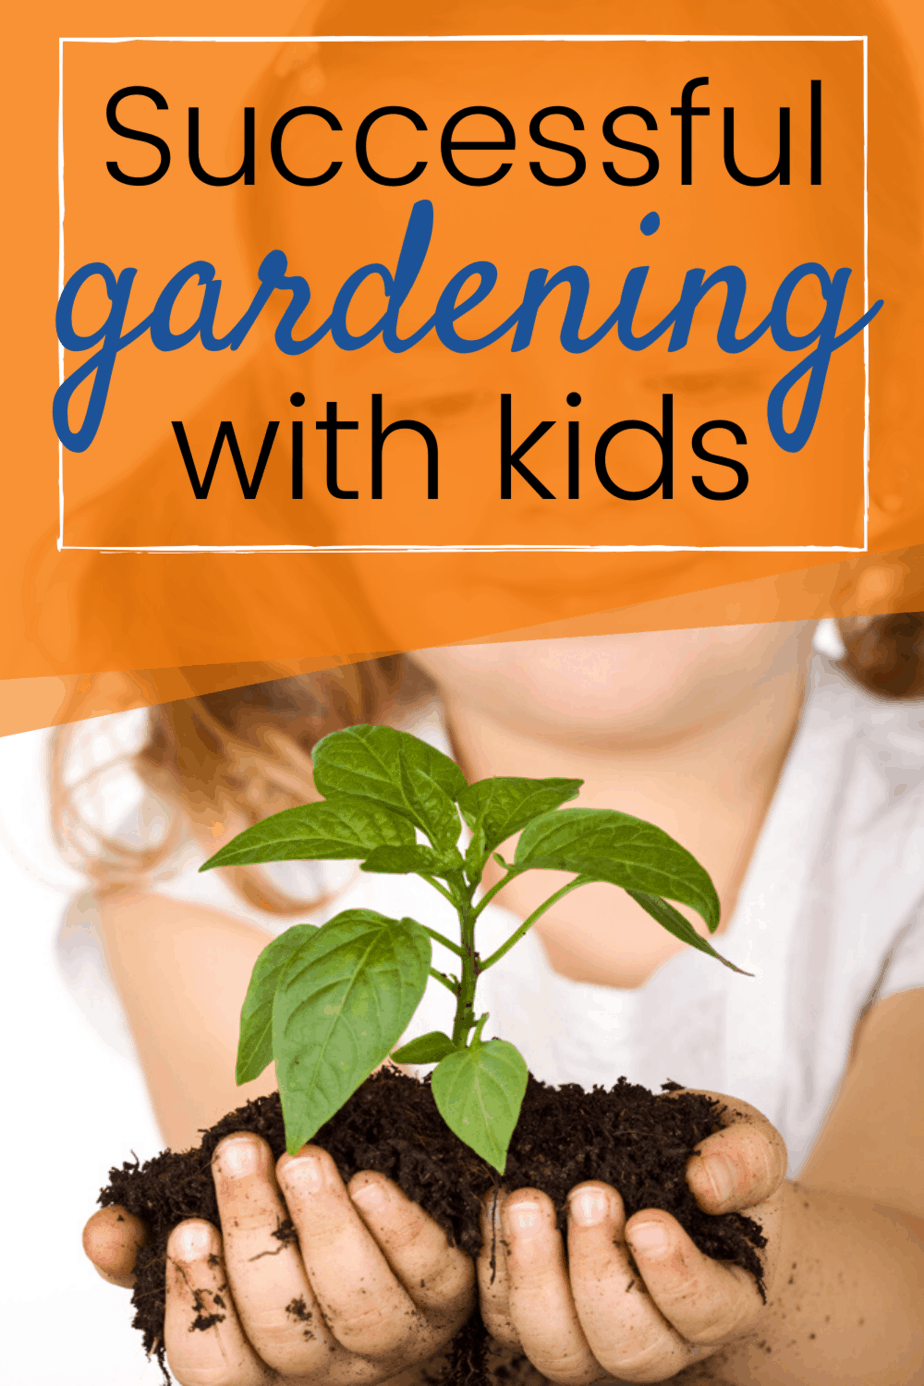 tips for successful gardening with kids. benefits and help